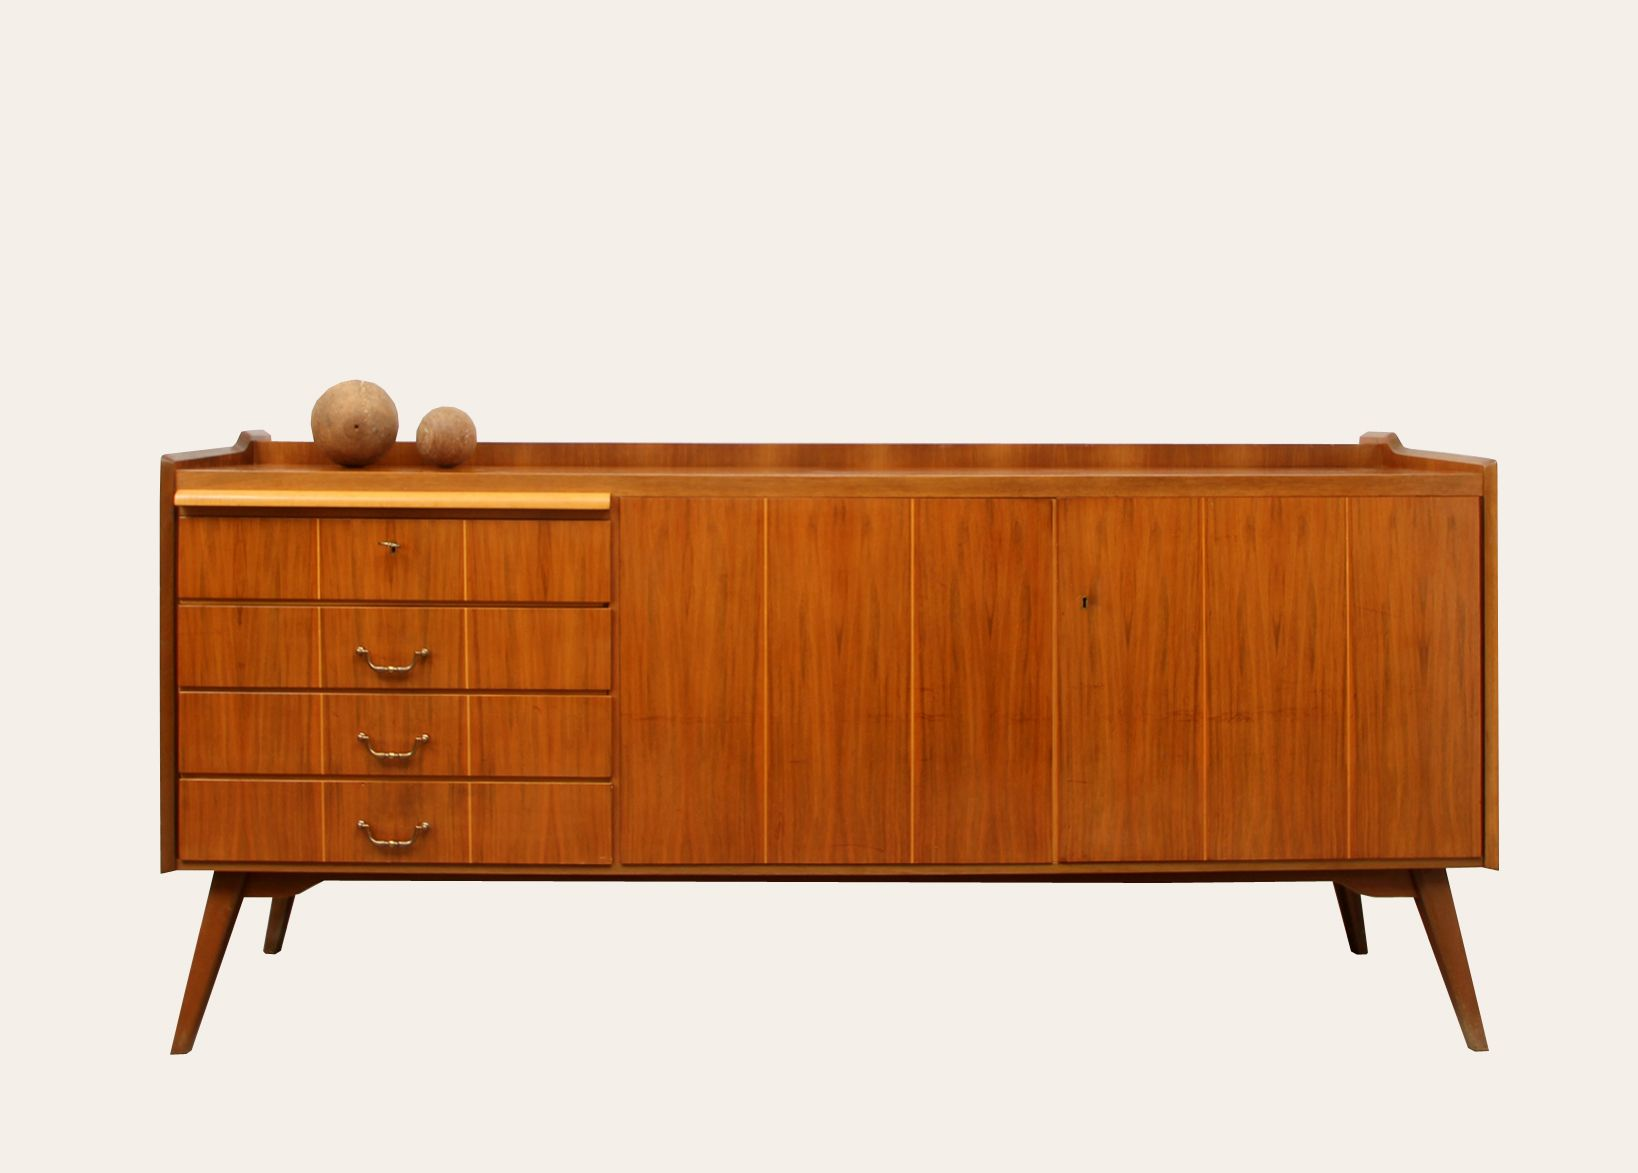 Mid century walnut sideboard 1950s for sale at pamono - Sideboard mid century ...